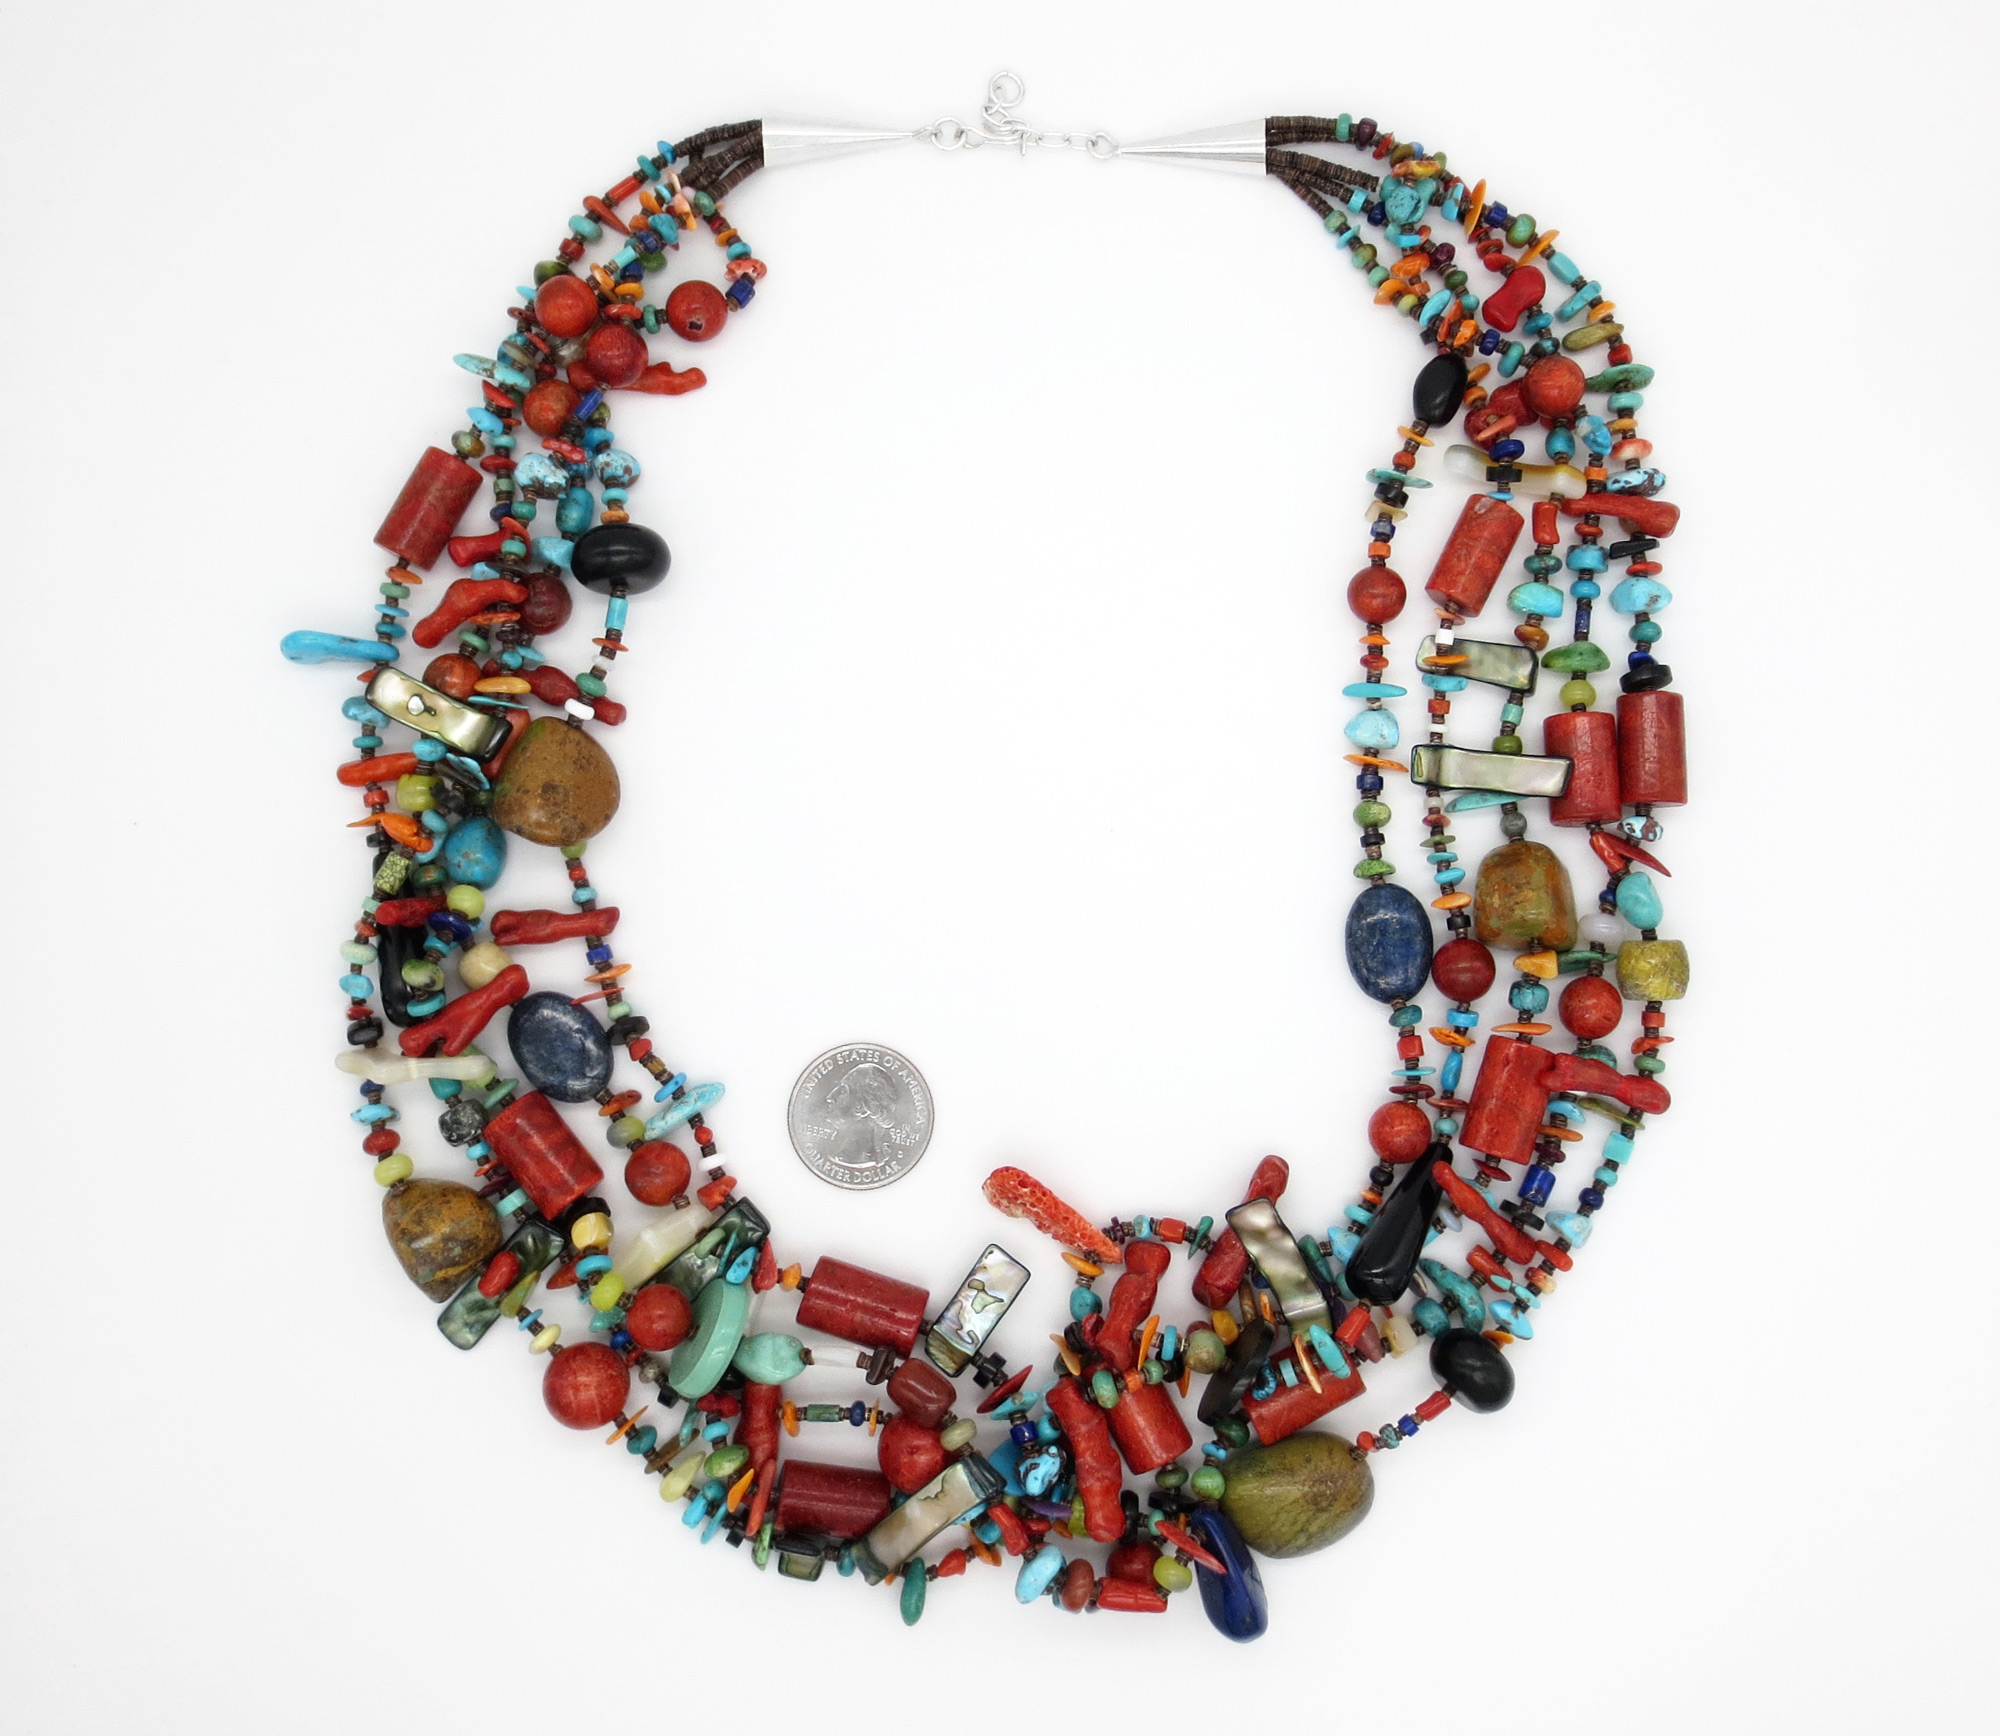 Image 2 of     Five Strand Turquoise Shell Coral Treasure Necklace 27